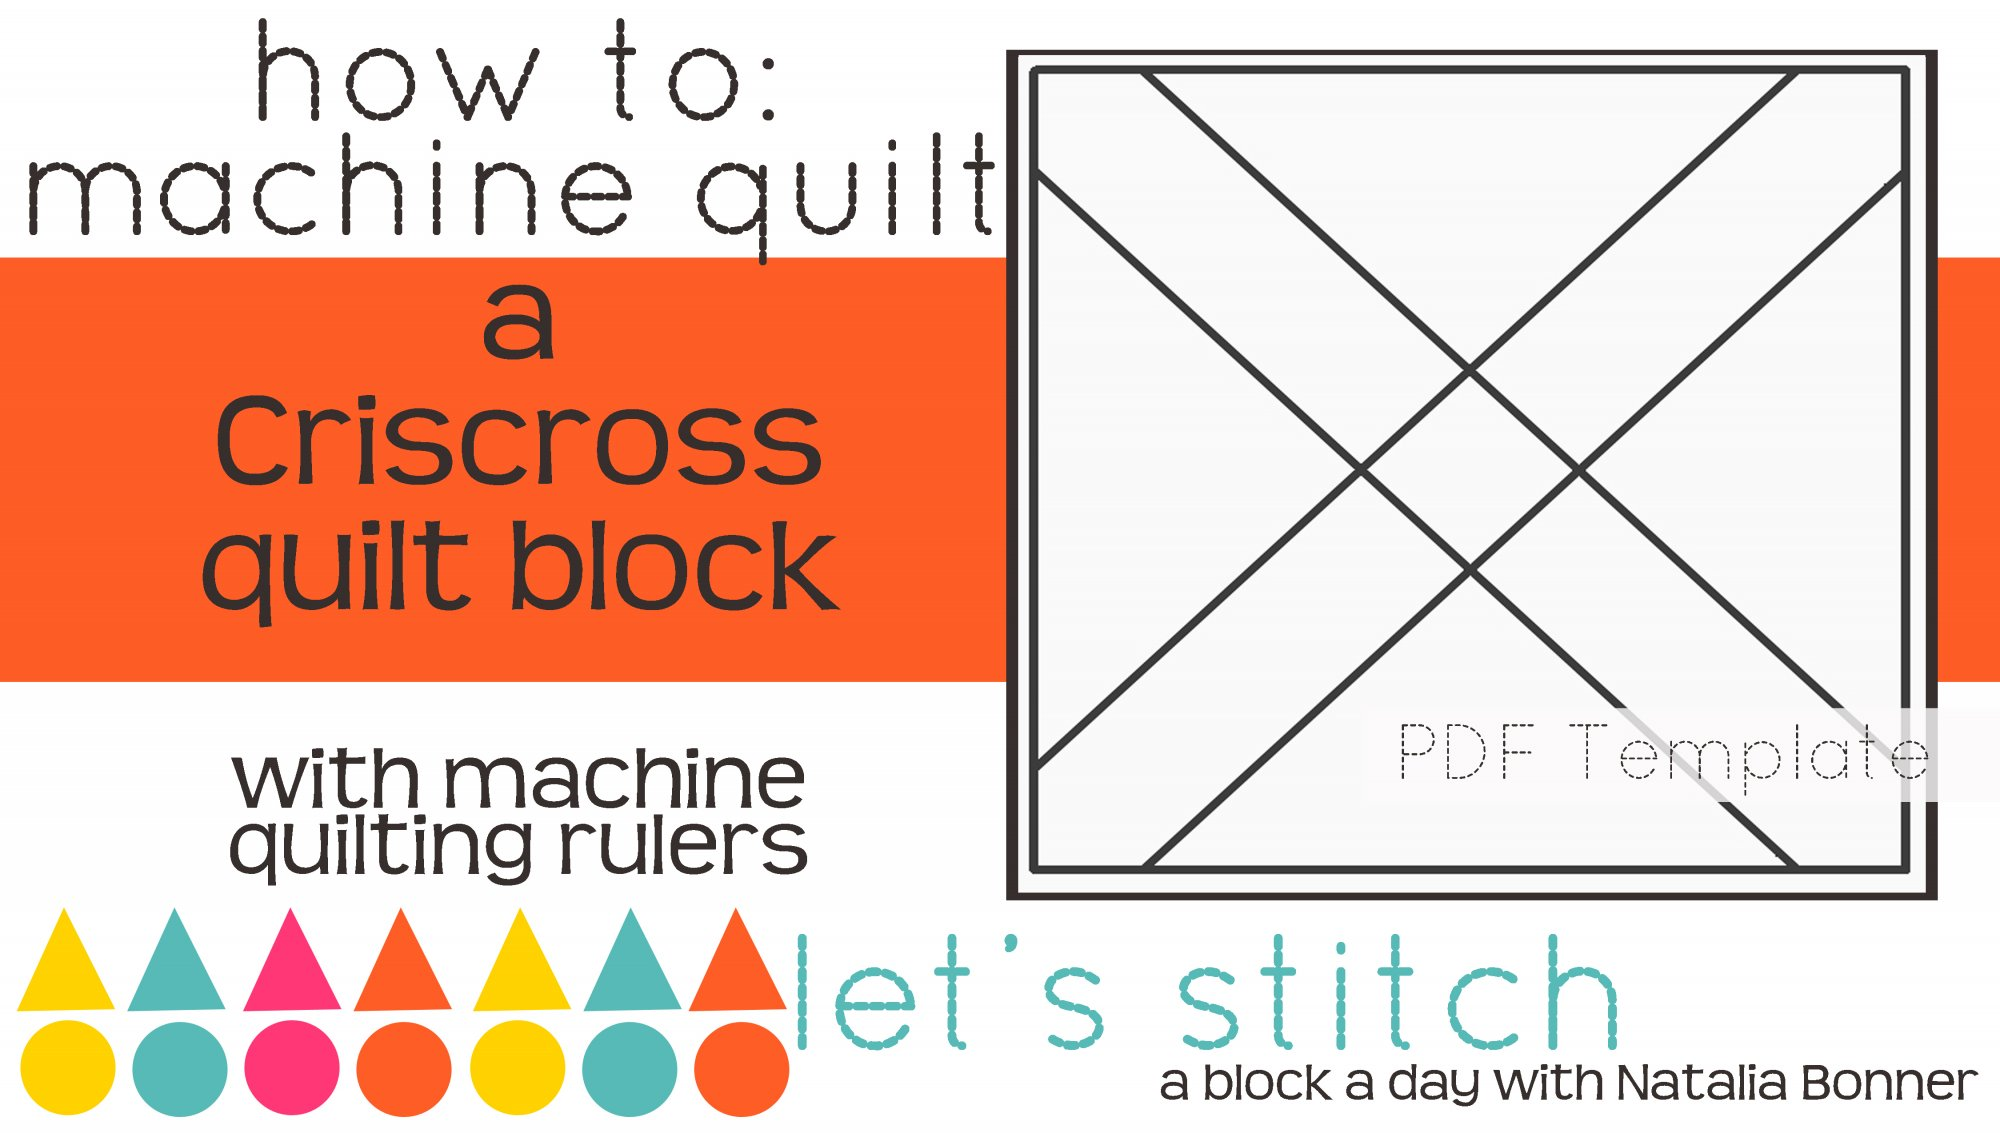 Let's Stitch - A Block a Day With Natalia Bonner - PDF - Criscross